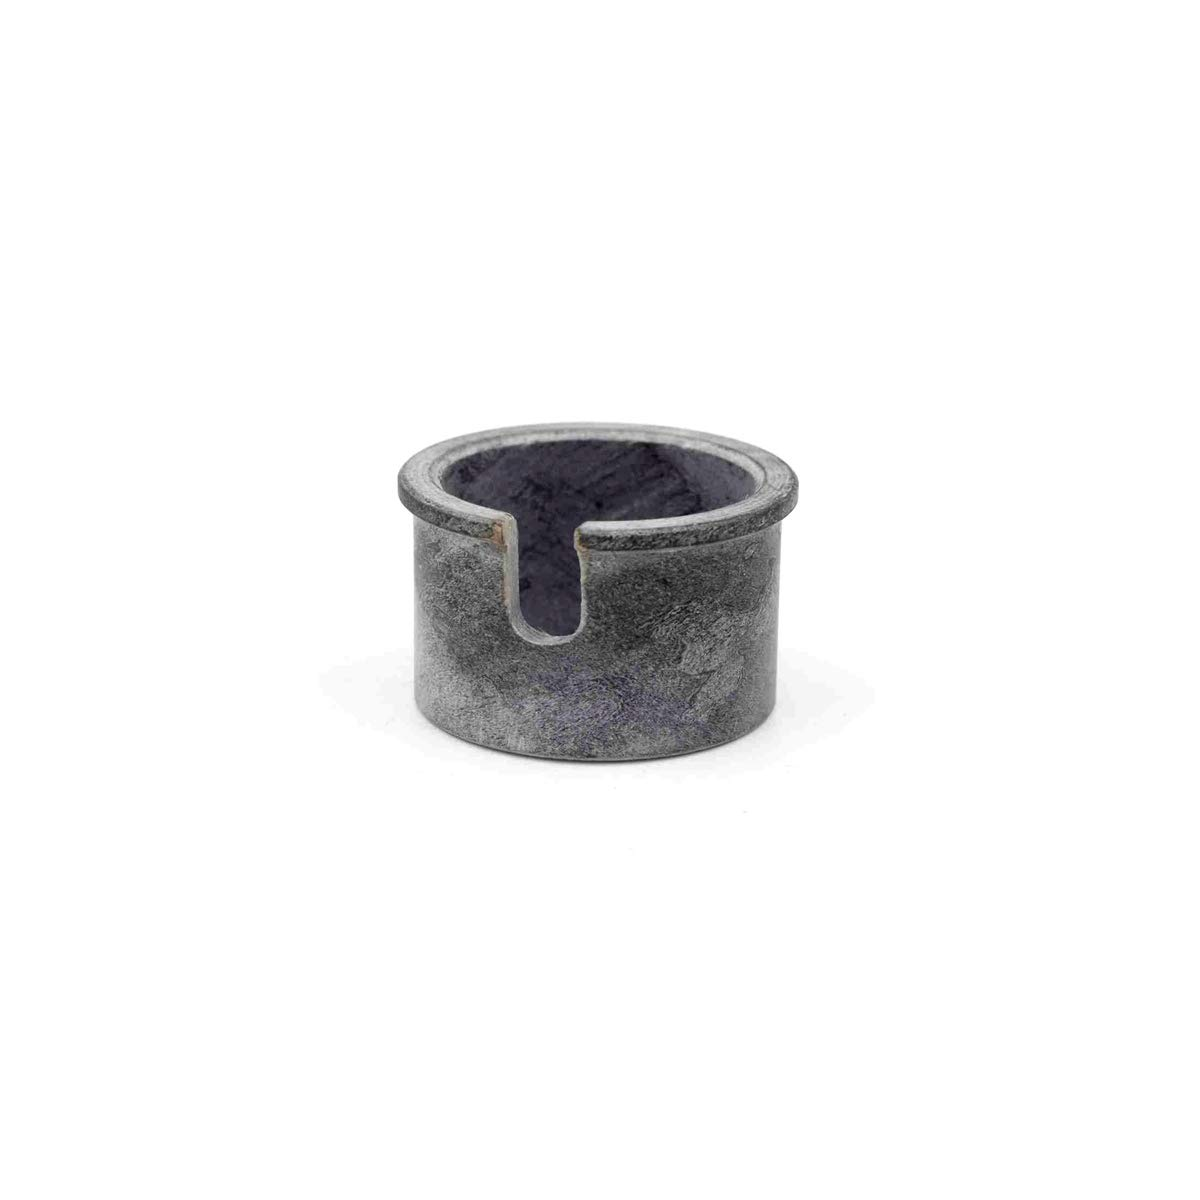 Thermal Dynamics Bushing for SL40 Torch 7-2915